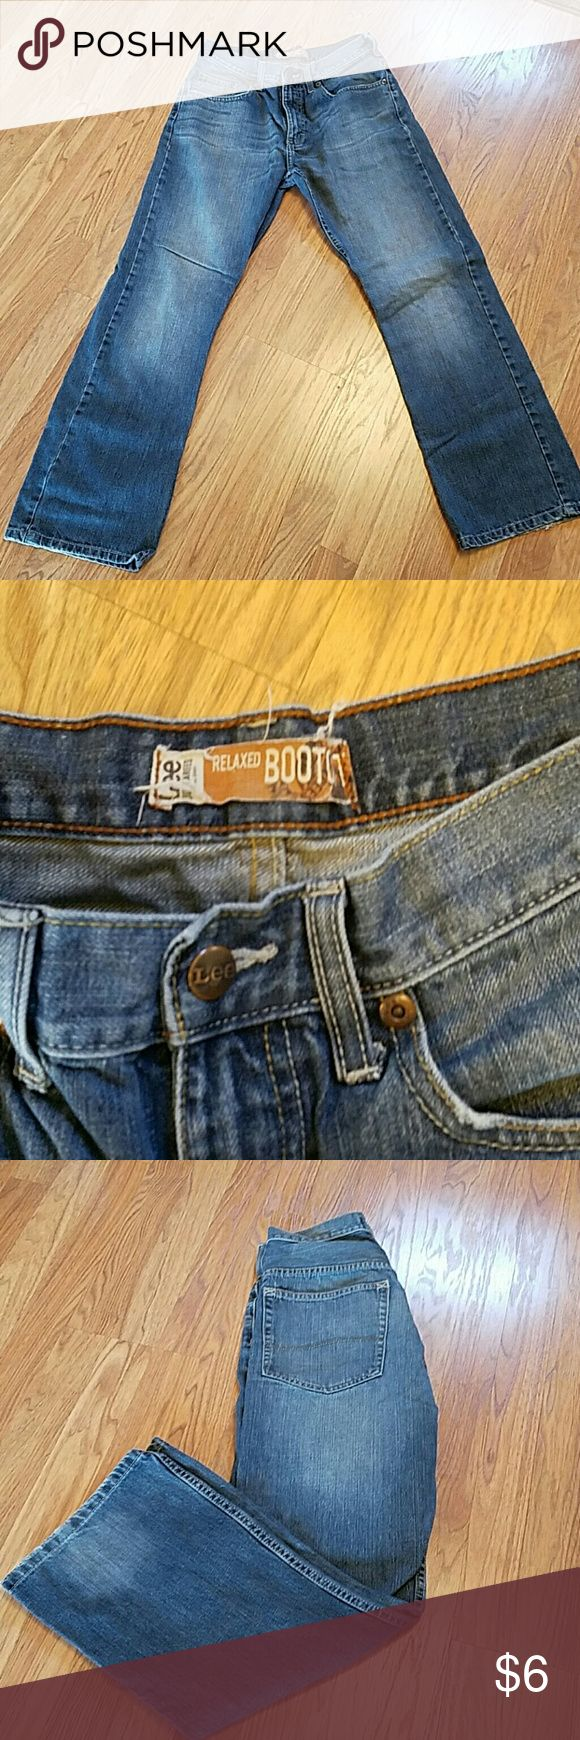 Men's Lee Jeans These are in good used condition.  Some wear at the bottoms and there is a wallet mark on one pocket. 30?30 Lee Jeans Bootcut